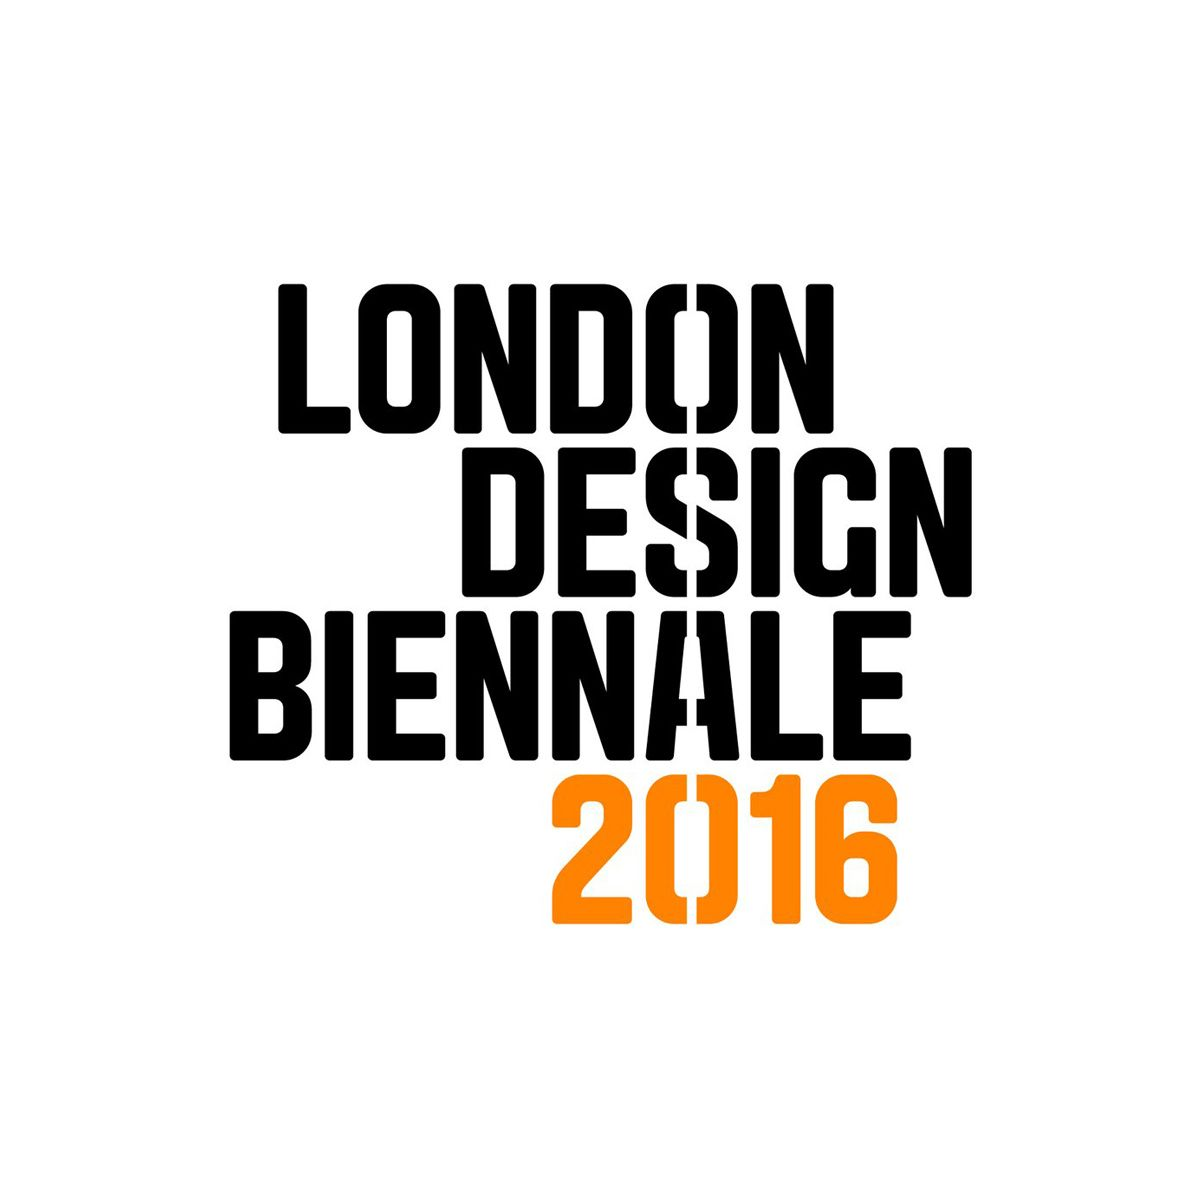 London Design Biennale by Pentagram. Fonts: Aveny-T.